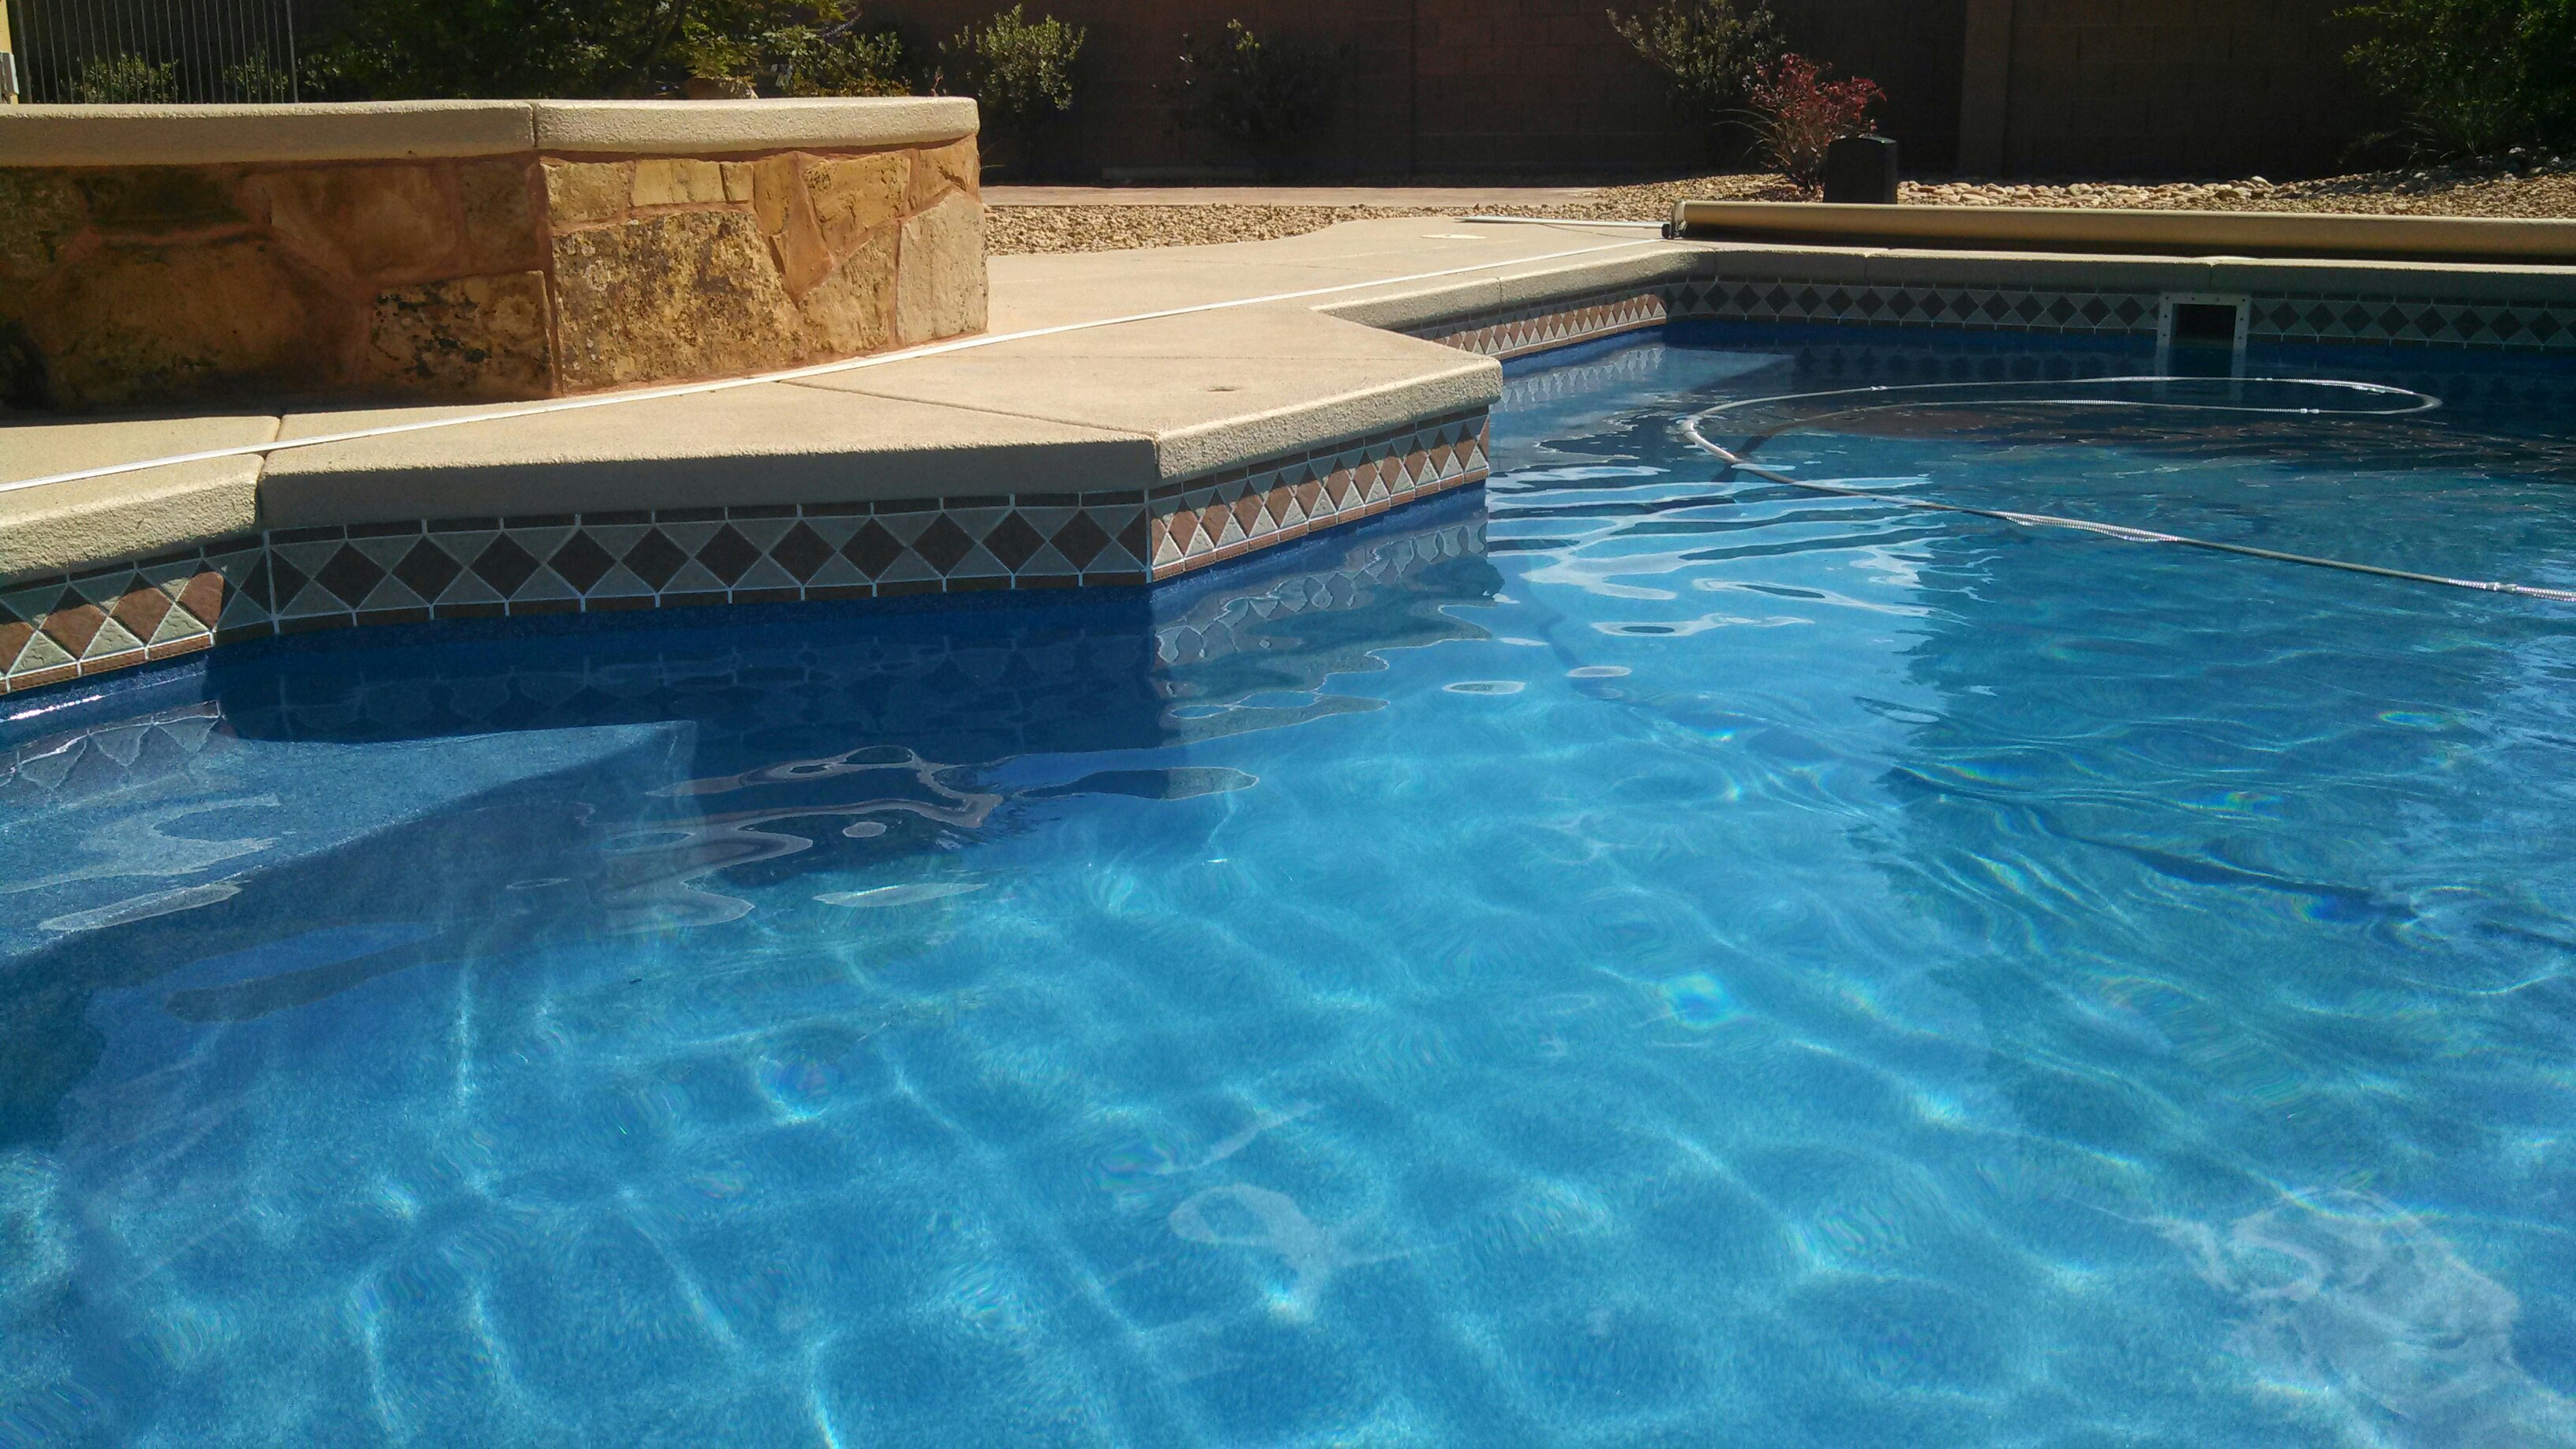 Paradise design pool and spa inground pools st george ut for Pool design utah